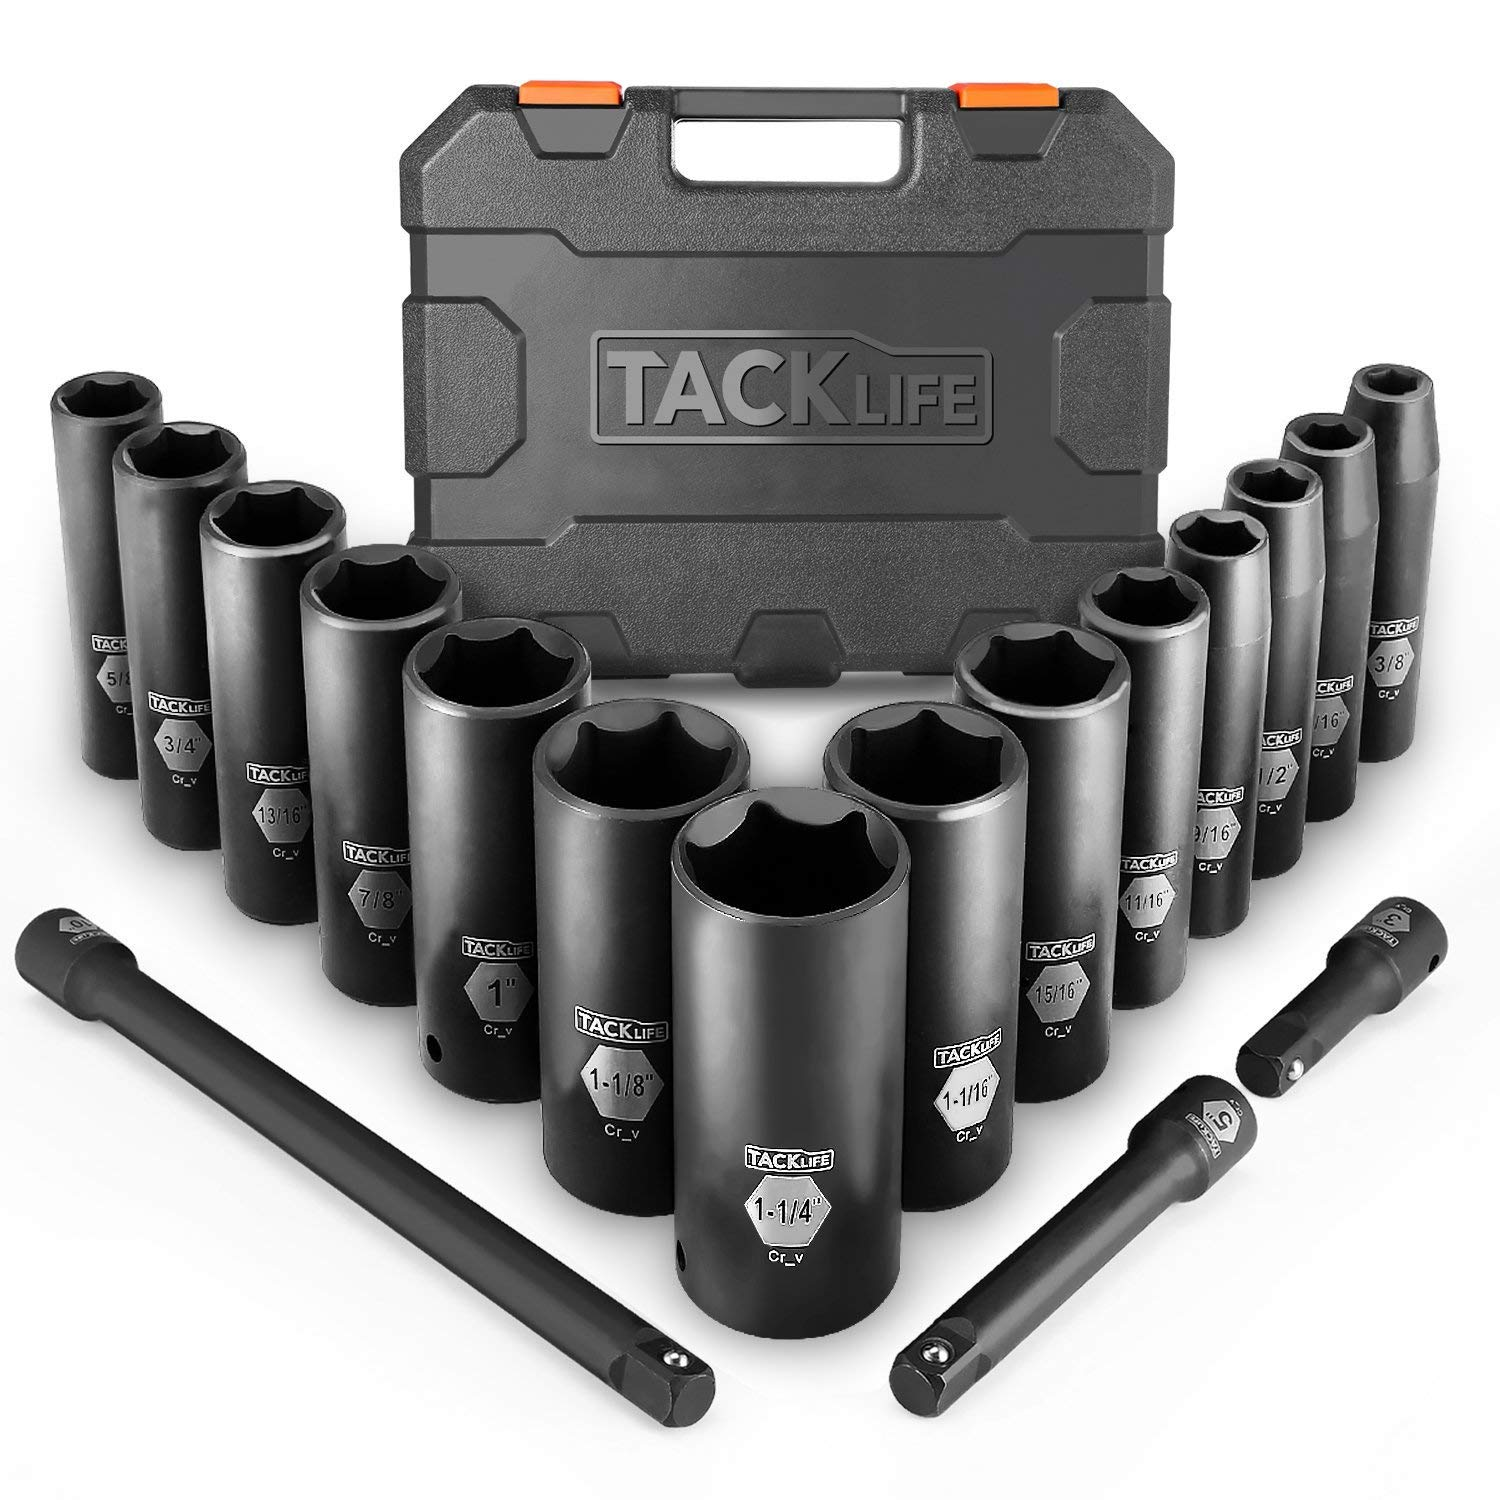 TACKLIFE 1/2-Inch Drive Master Deep Impact Socket Set, Inch, CR-V, 6 Point, 17-Piece Set - HIS2A